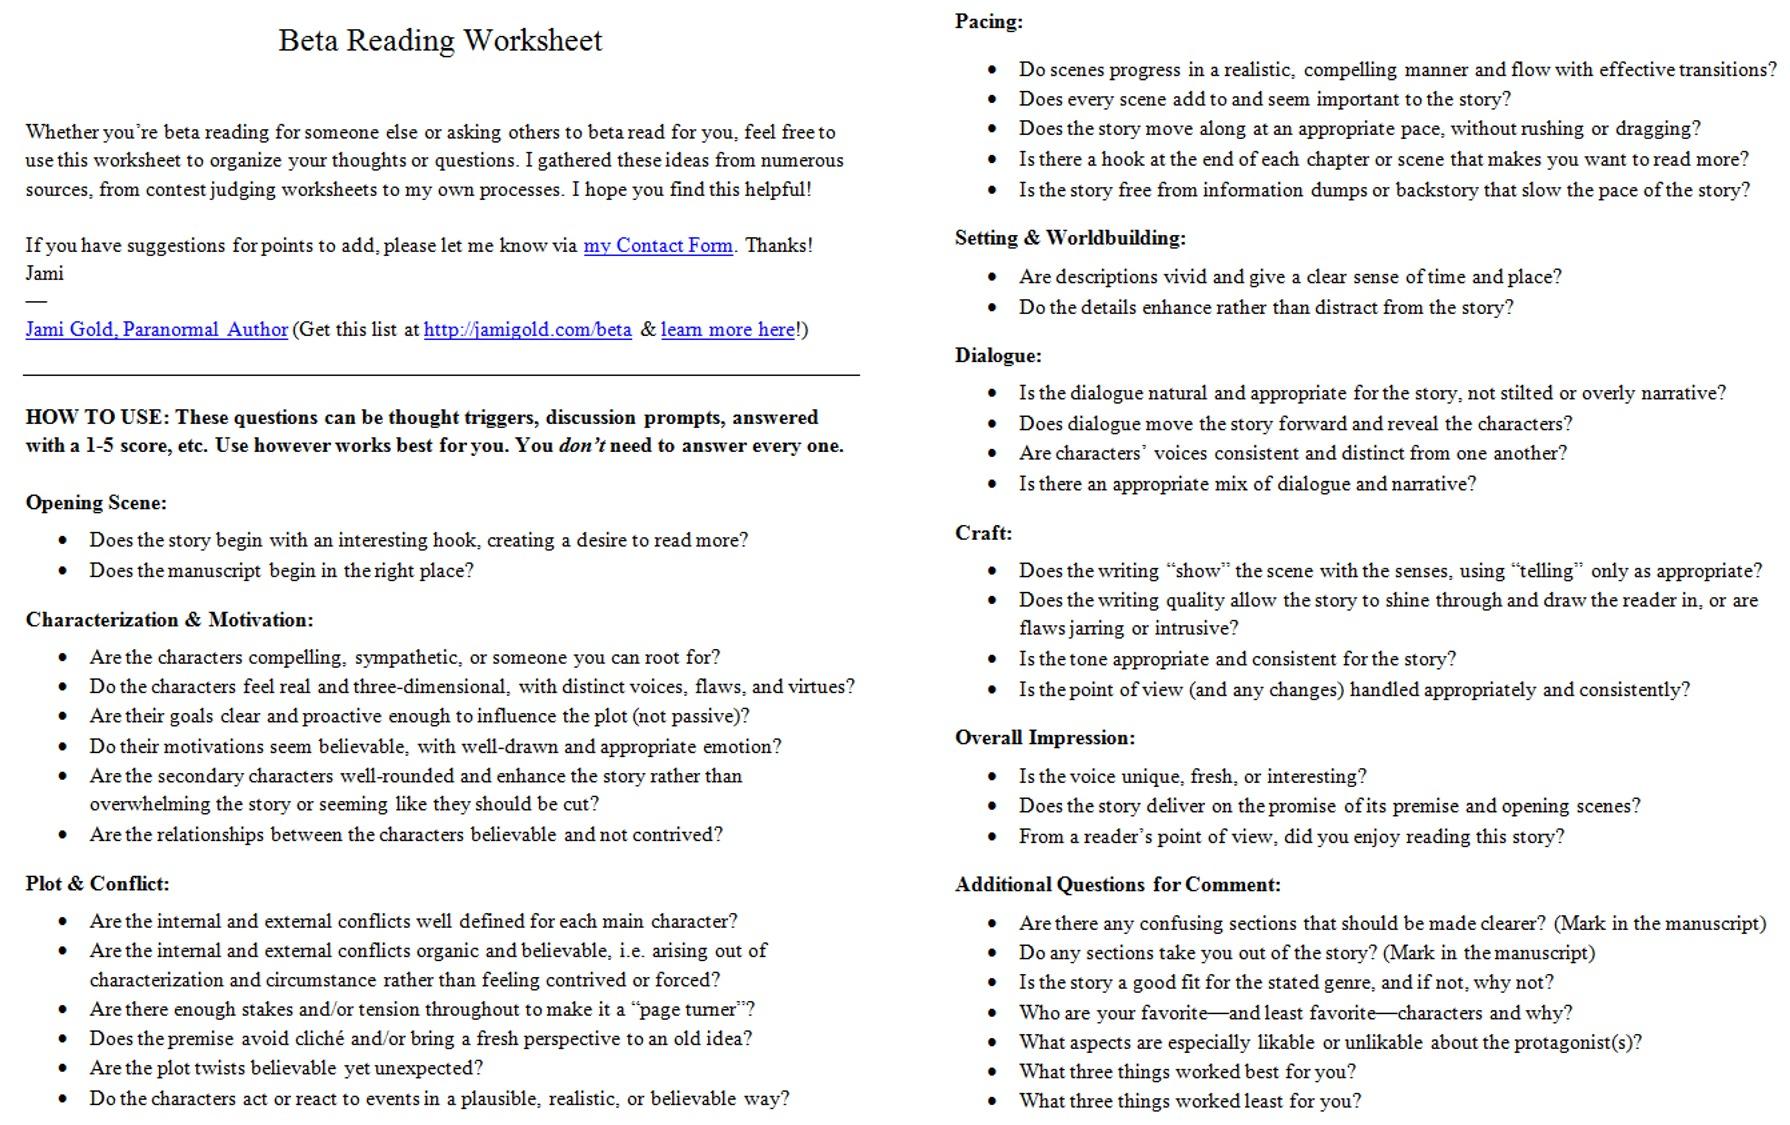 Aldiablosus  Marvelous Worksheets For Writers  Jami Gold Paranormal Author With Lovely Screen Shot Of The Twopage Beta Reading Worksheet With Cool Tree Diagrams Probability Worksheets Also Maths Code Breaker Worksheets In Addition Abstract Nouns Worksheet For Grade  And Teenage Personal Hygiene Worksheets As Well As Appropriate Units Of Measurement Worksheet Additionally Worksheet On Division From Jamigoldcom With Aldiablosus  Lovely Worksheets For Writers  Jami Gold Paranormal Author With Cool Screen Shot Of The Twopage Beta Reading Worksheet And Marvelous Tree Diagrams Probability Worksheets Also Maths Code Breaker Worksheets In Addition Abstract Nouns Worksheet For Grade  From Jamigoldcom